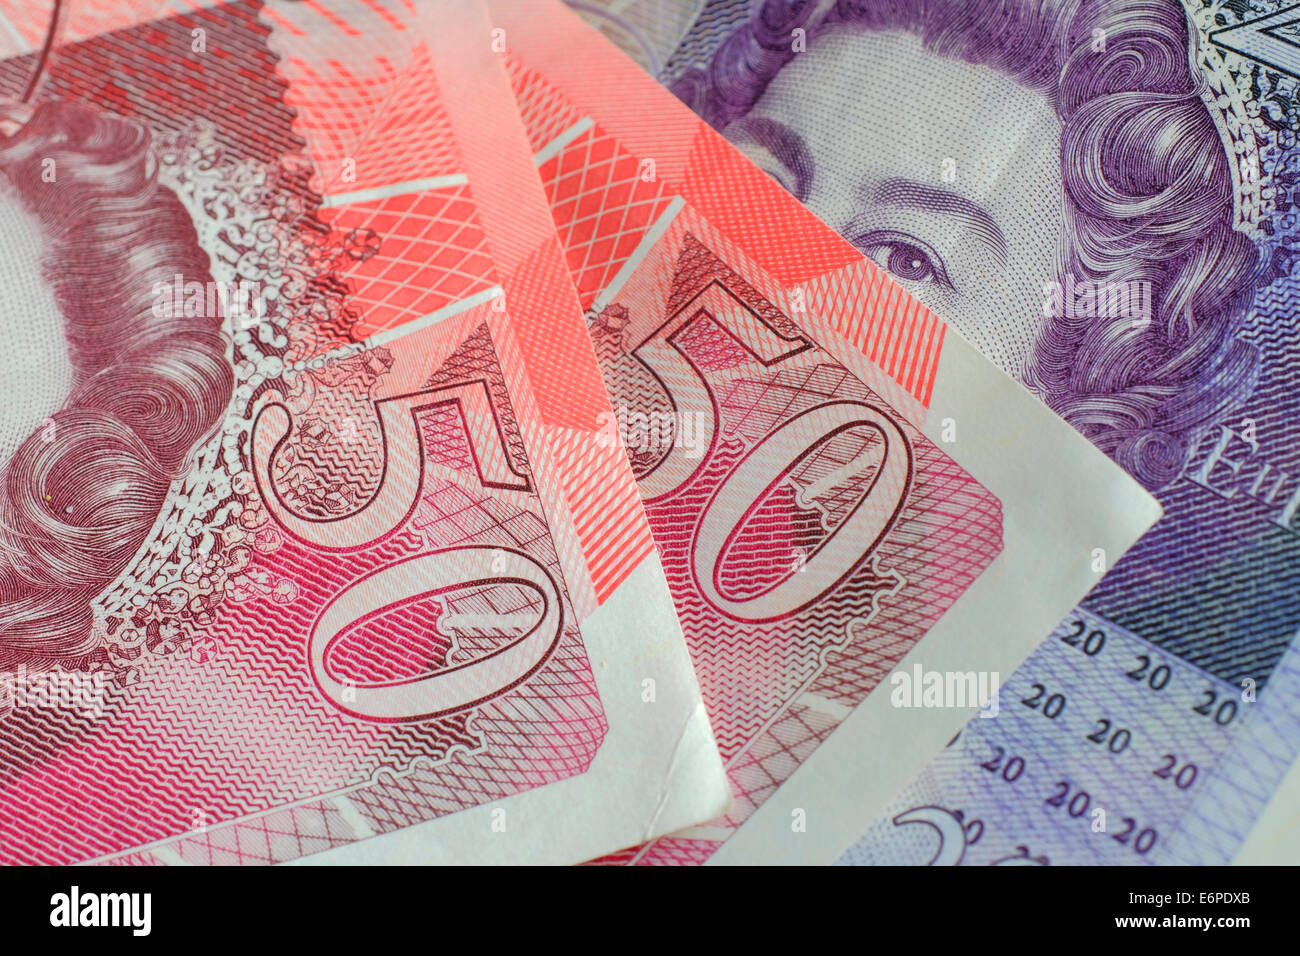 British currency 50 & 20 pound notes - Stock Image